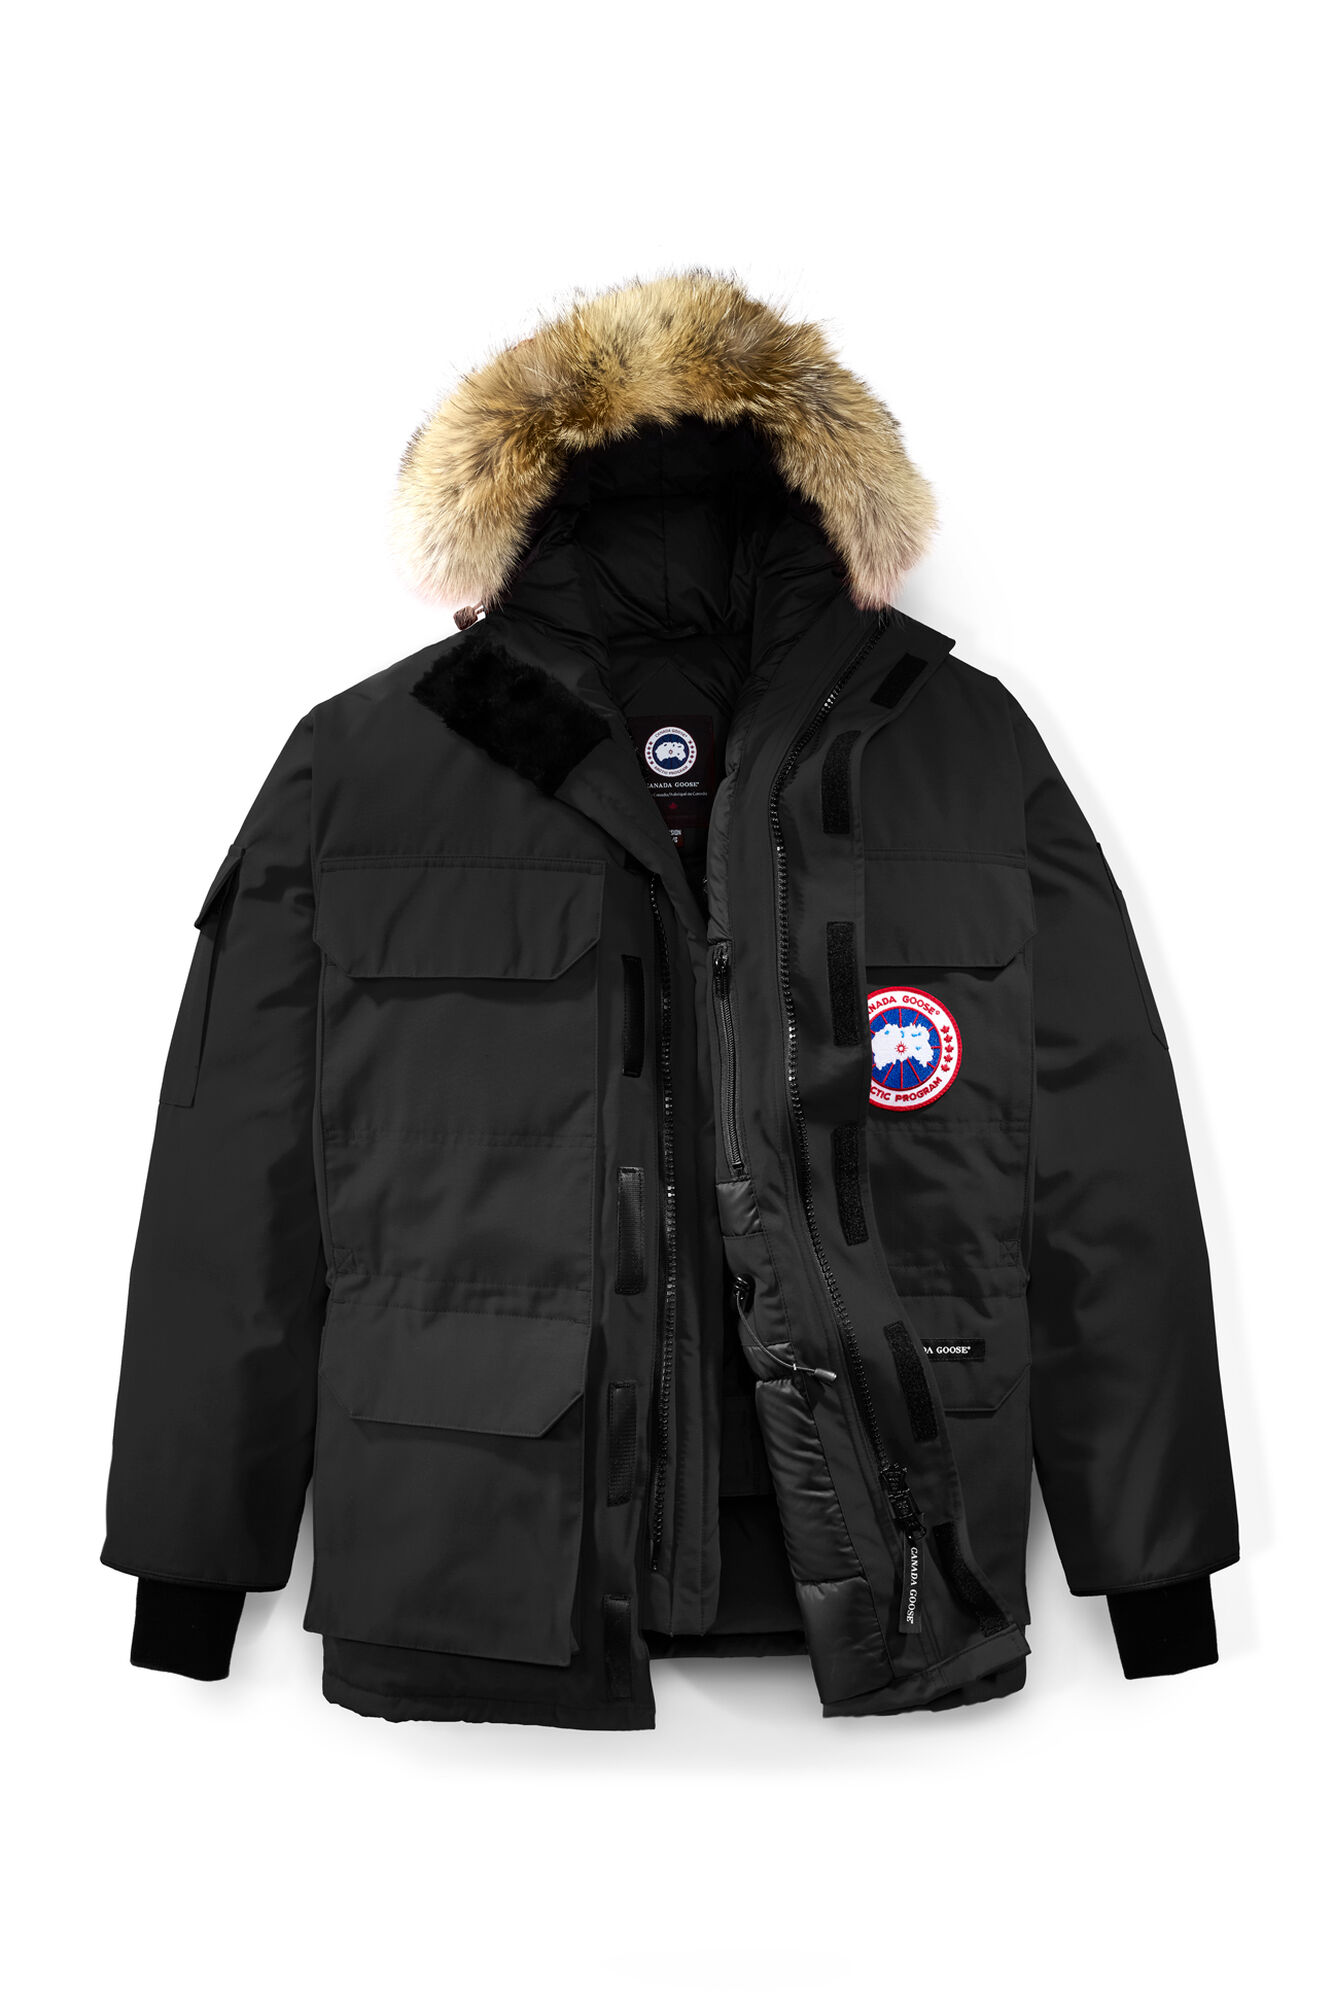 Canada Goose parka sale authentic - Men's Arctic Program Expedition Parka | Canada Goose?